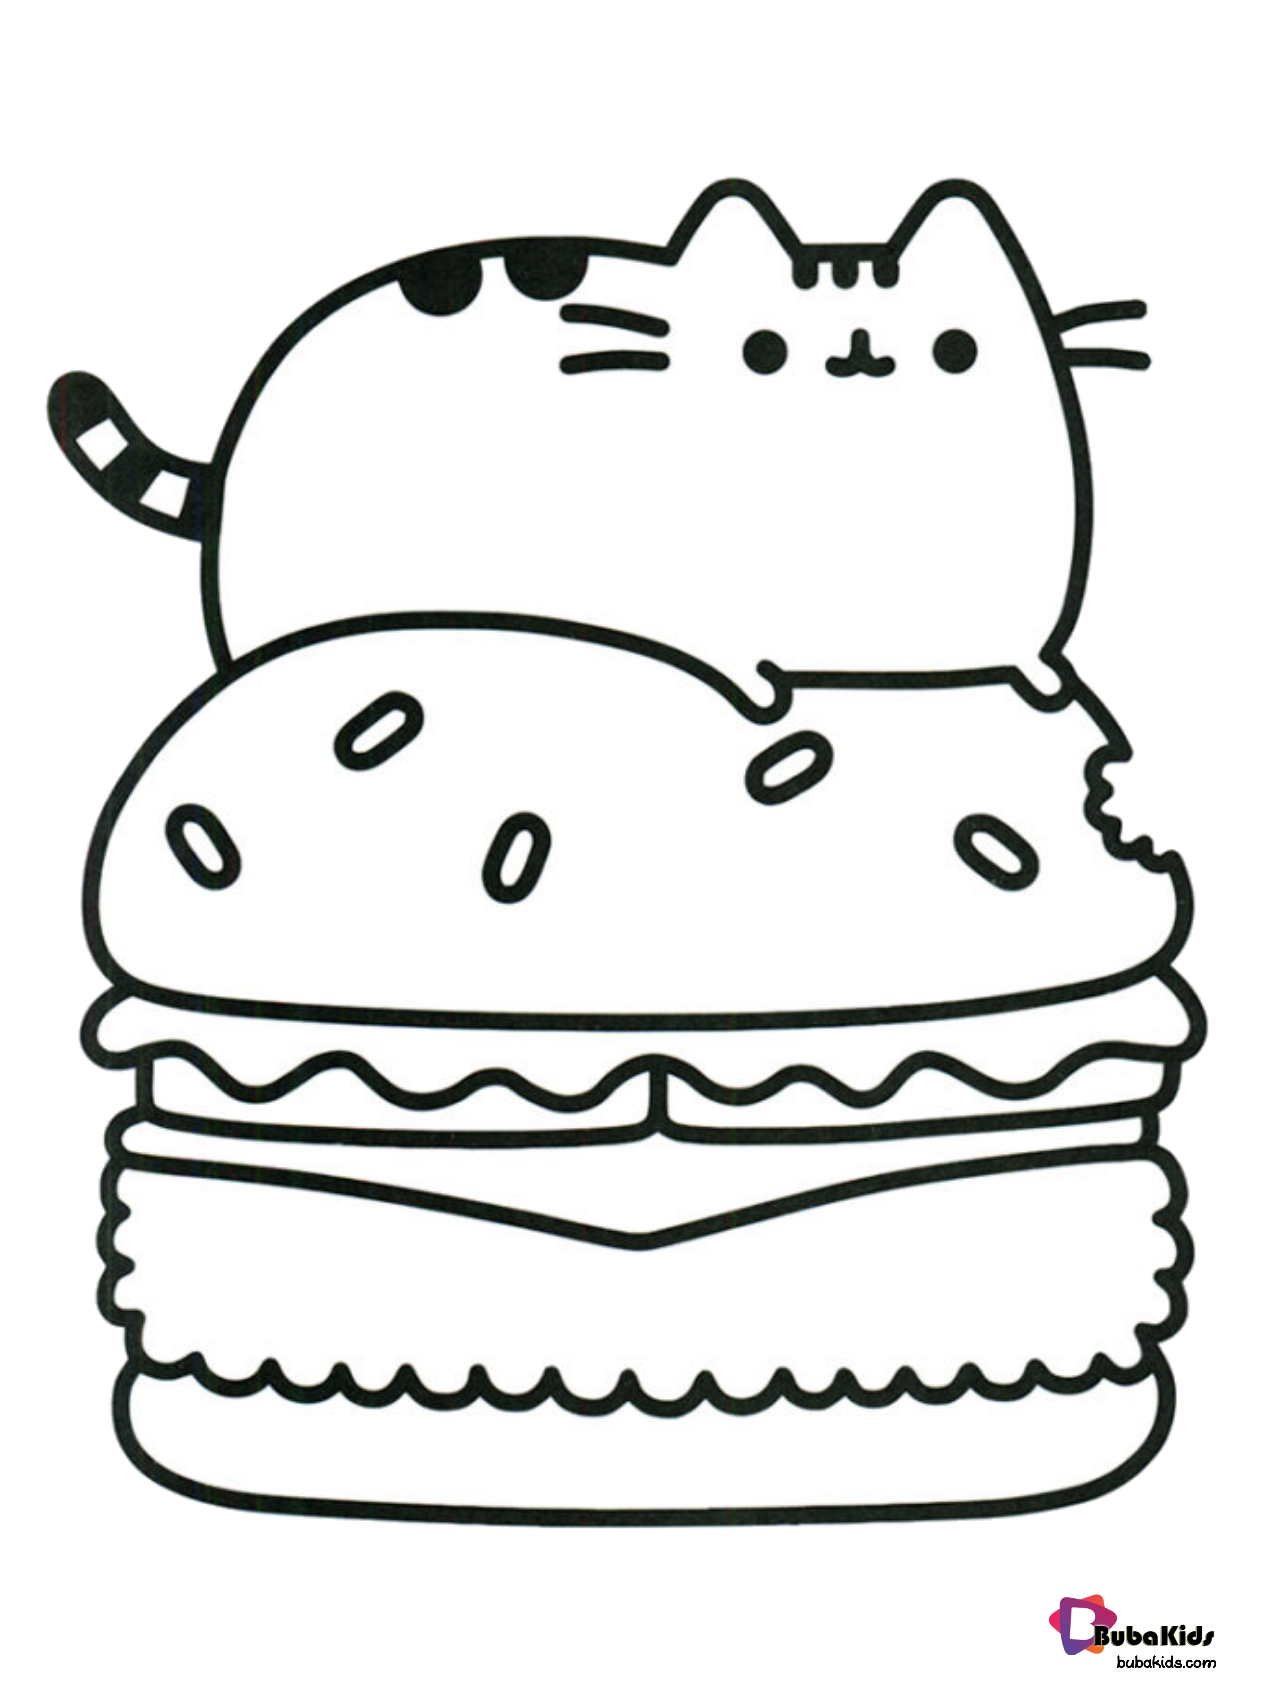 Cute Pusheen Cat Eating Burger Coloring Page Collection Of Cartoon Coloring Pages For Teena Cartoon Coloring Pages Cute Coloring Pages Pusheen Coloring Pages